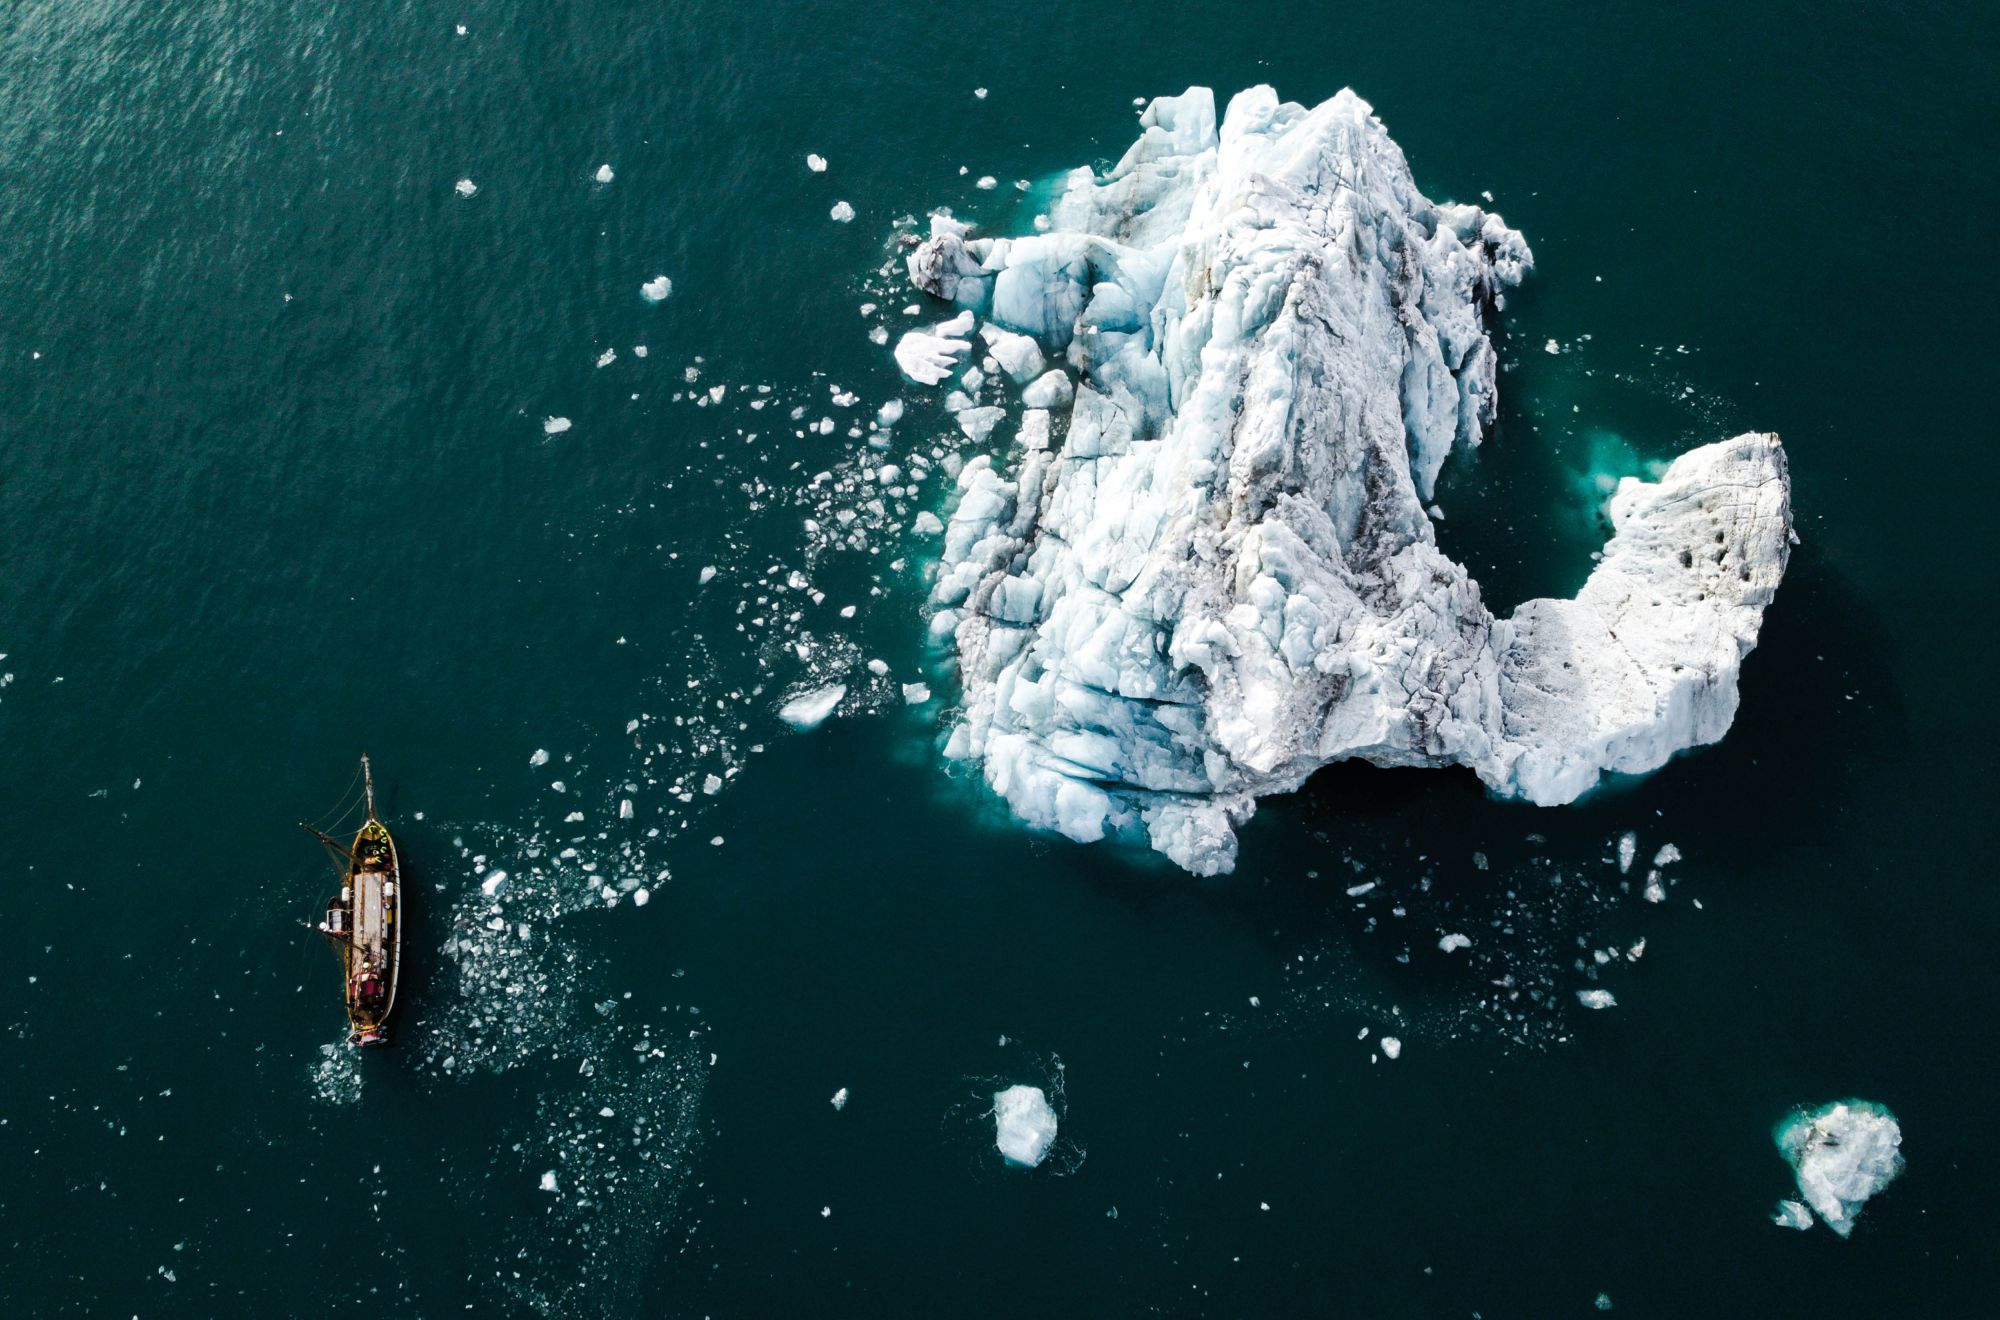 Uncharted Territory: 12 Breathtaking Shots Of North Sailing's Expedition In Greenland